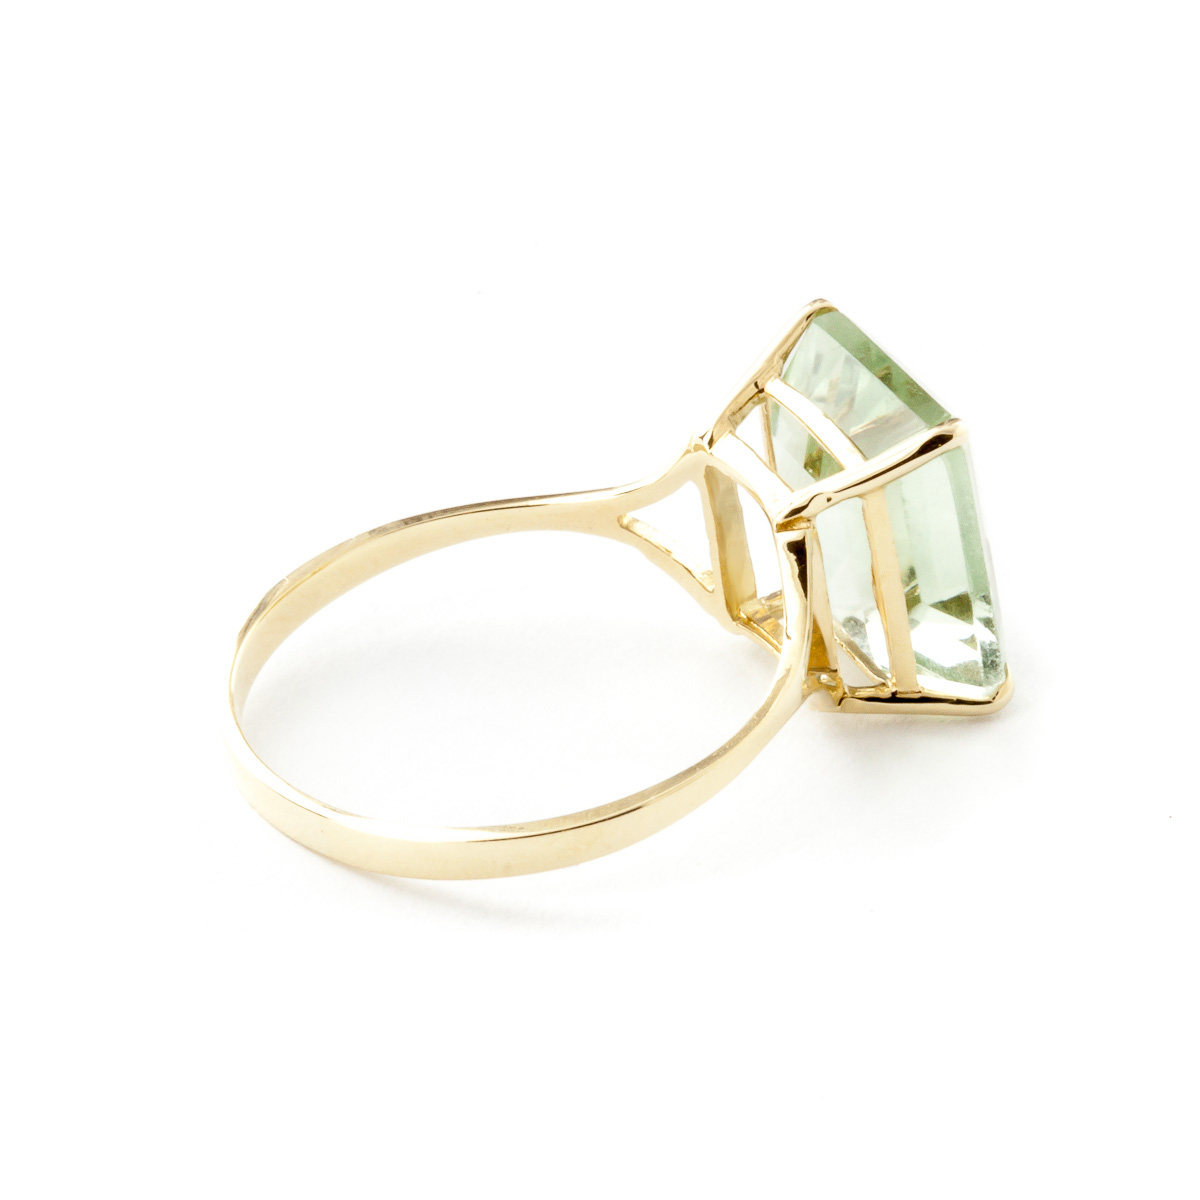 Green Amethyst Ring 6.5ct in 9ct Gold